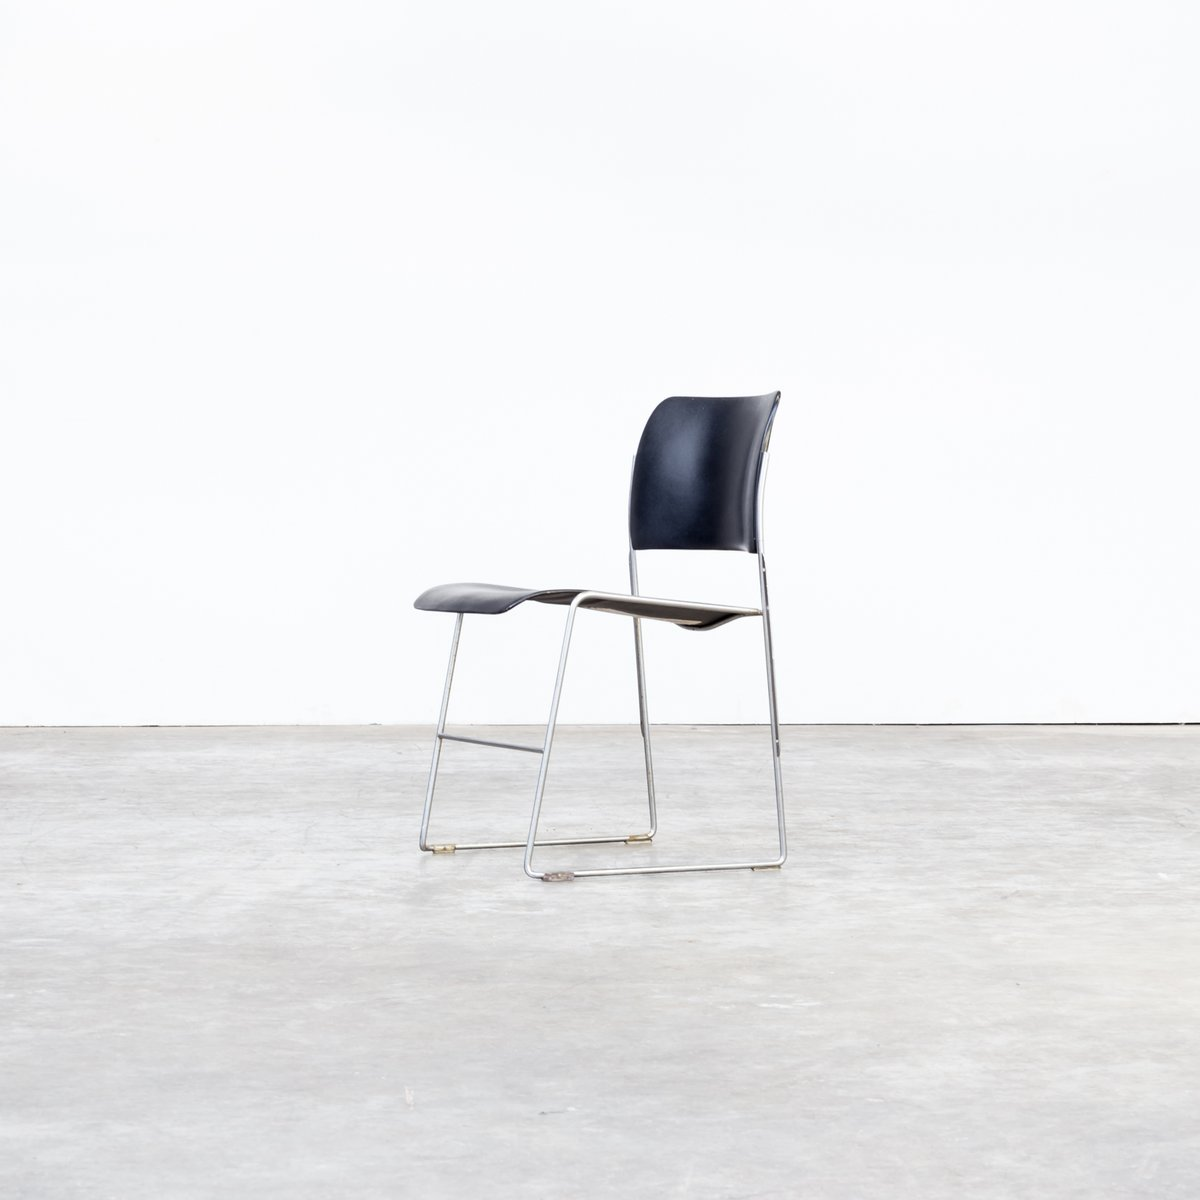 david rowland metal chair style chairs model 40 4 stacking by for